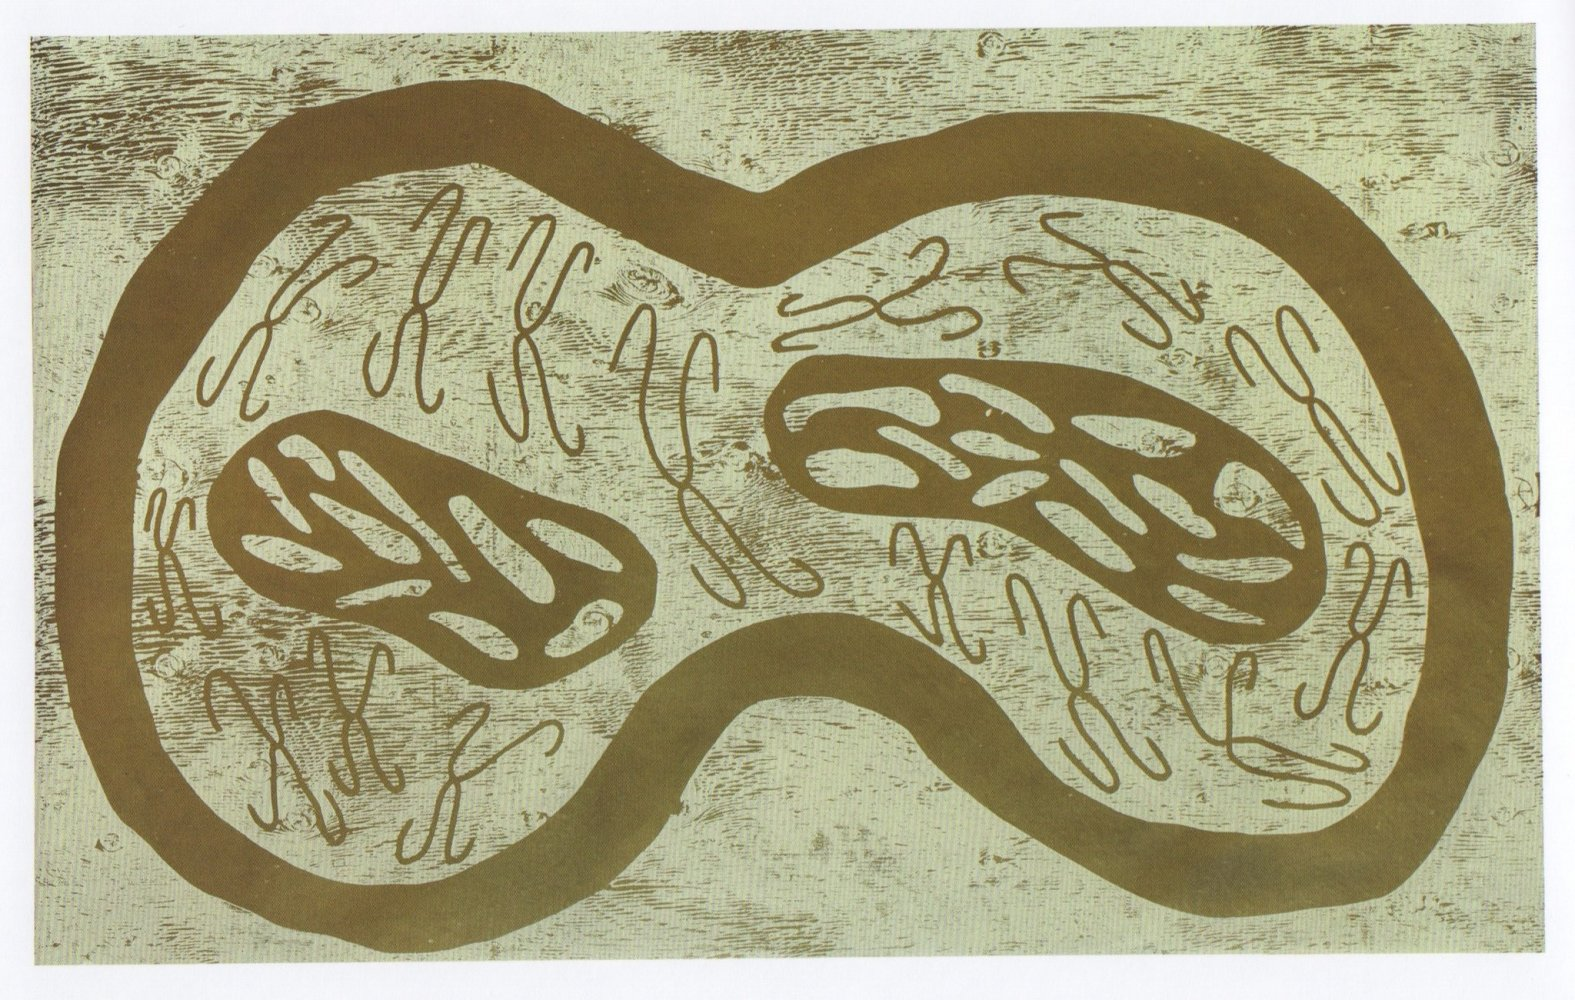 <div class=&#34;artist&#34;><strong>Nicholas POPE</strong></div> 1949- <div class=&#34;title&#34;><em>Gold and White Shapes (A Conversation Snippet)</em>, 1985</div> <div class=&#34;signed_and_dated&#34;>Initialled, titled, dated and numbered 2/7 on the reverse.</div> <div class=&#34;medium&#34;>Woodcut</div> <div class=&#34;dimensions&#34;>111 x 182 cm</div>